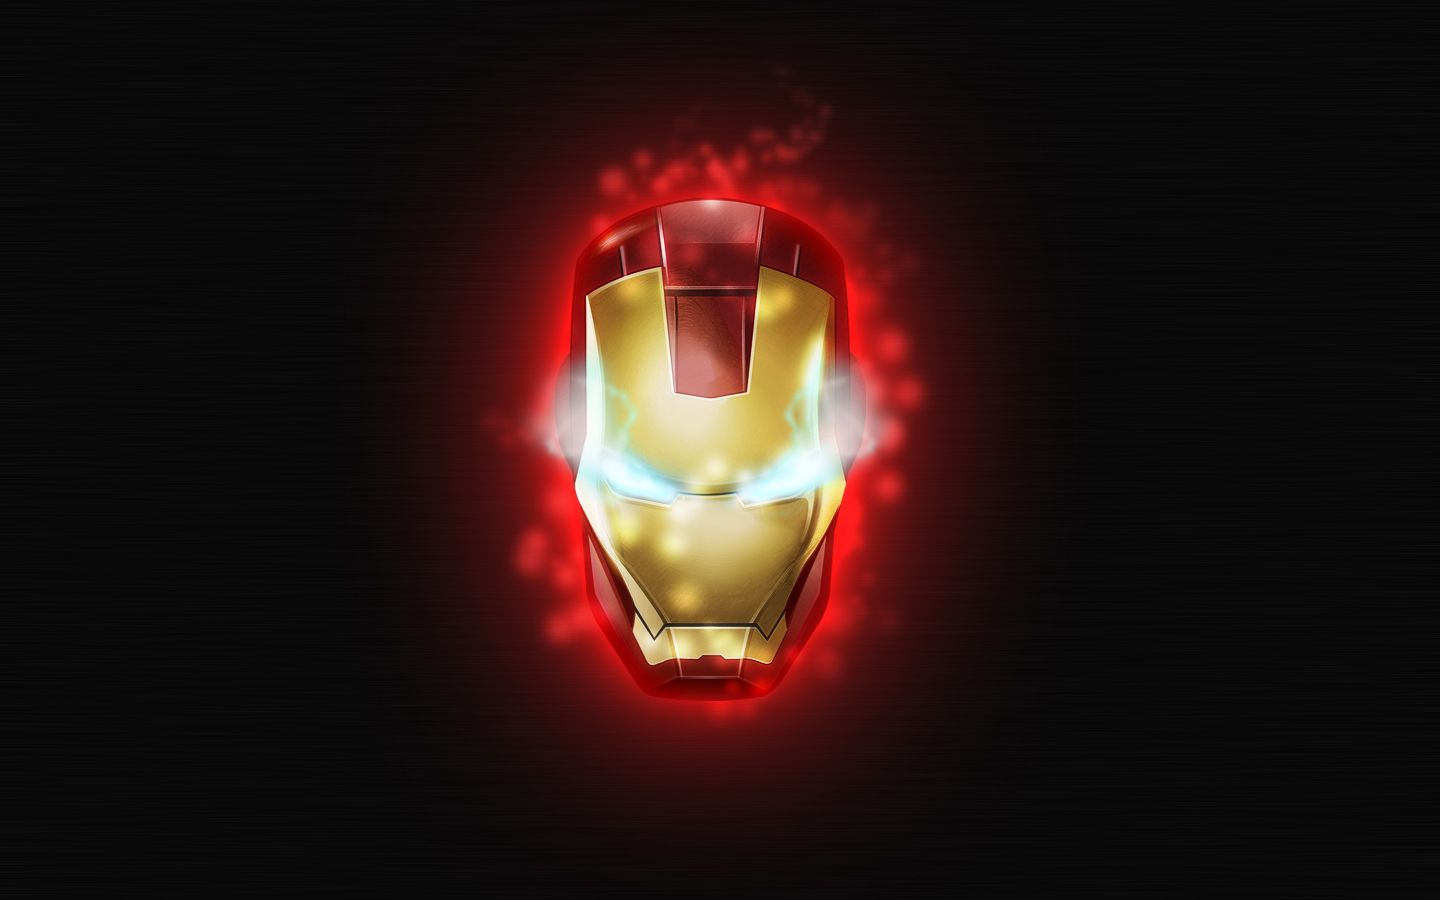 Captain America Vs Iron Man Hd Desktop Wallpaper Widescreen 1440x900